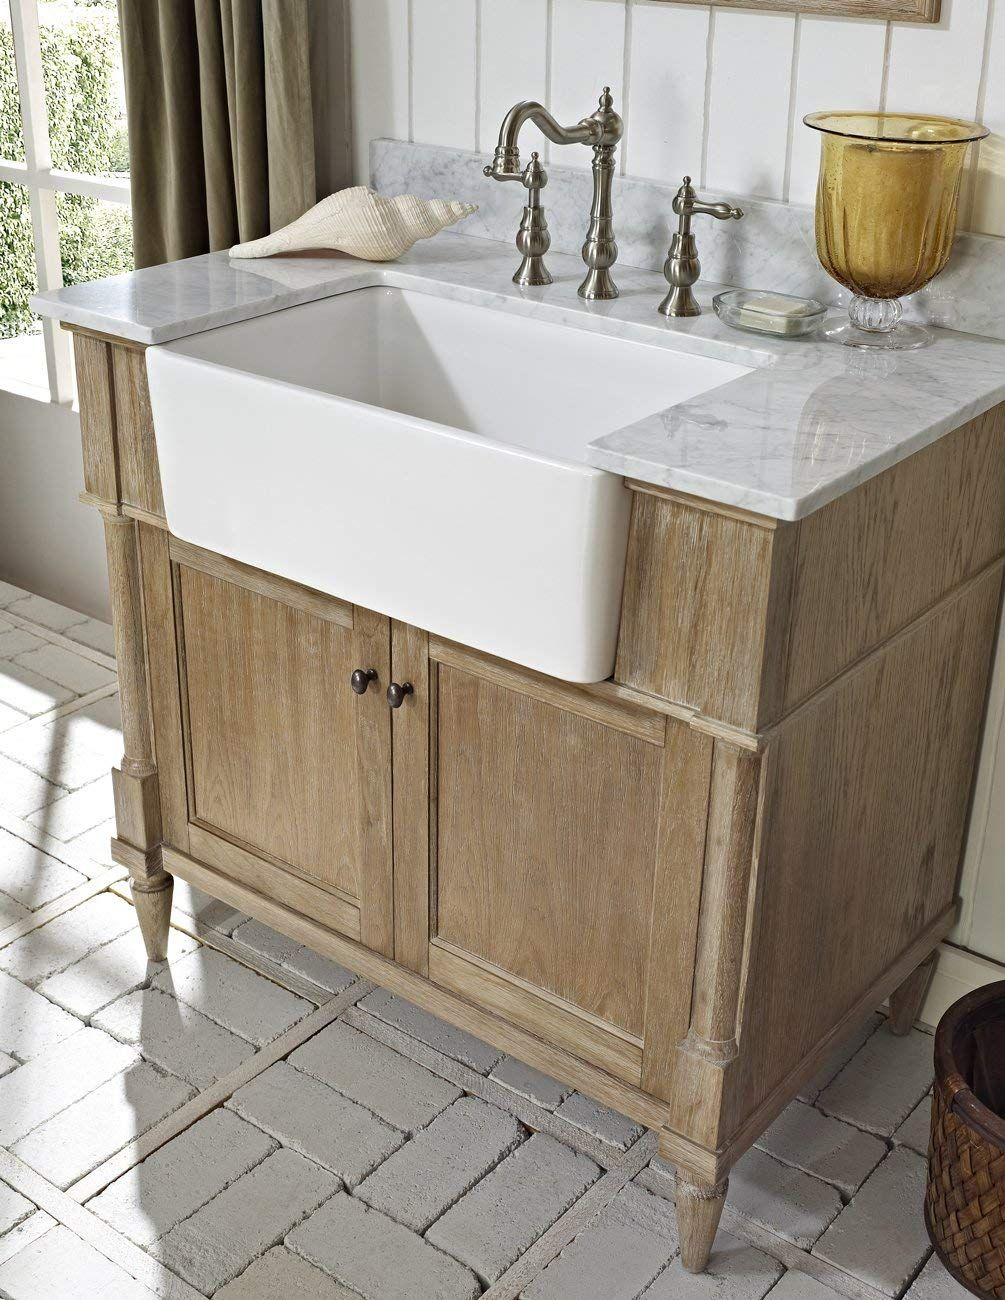 Fairmont Designs 142 Fv36 Rustic Chic 36 Farmhouse Vanity Base Cabinet Only Weathered O Farmhouse Bathroom Vanity Farmhouse Sink Vanity Unique Bathroom Vanity